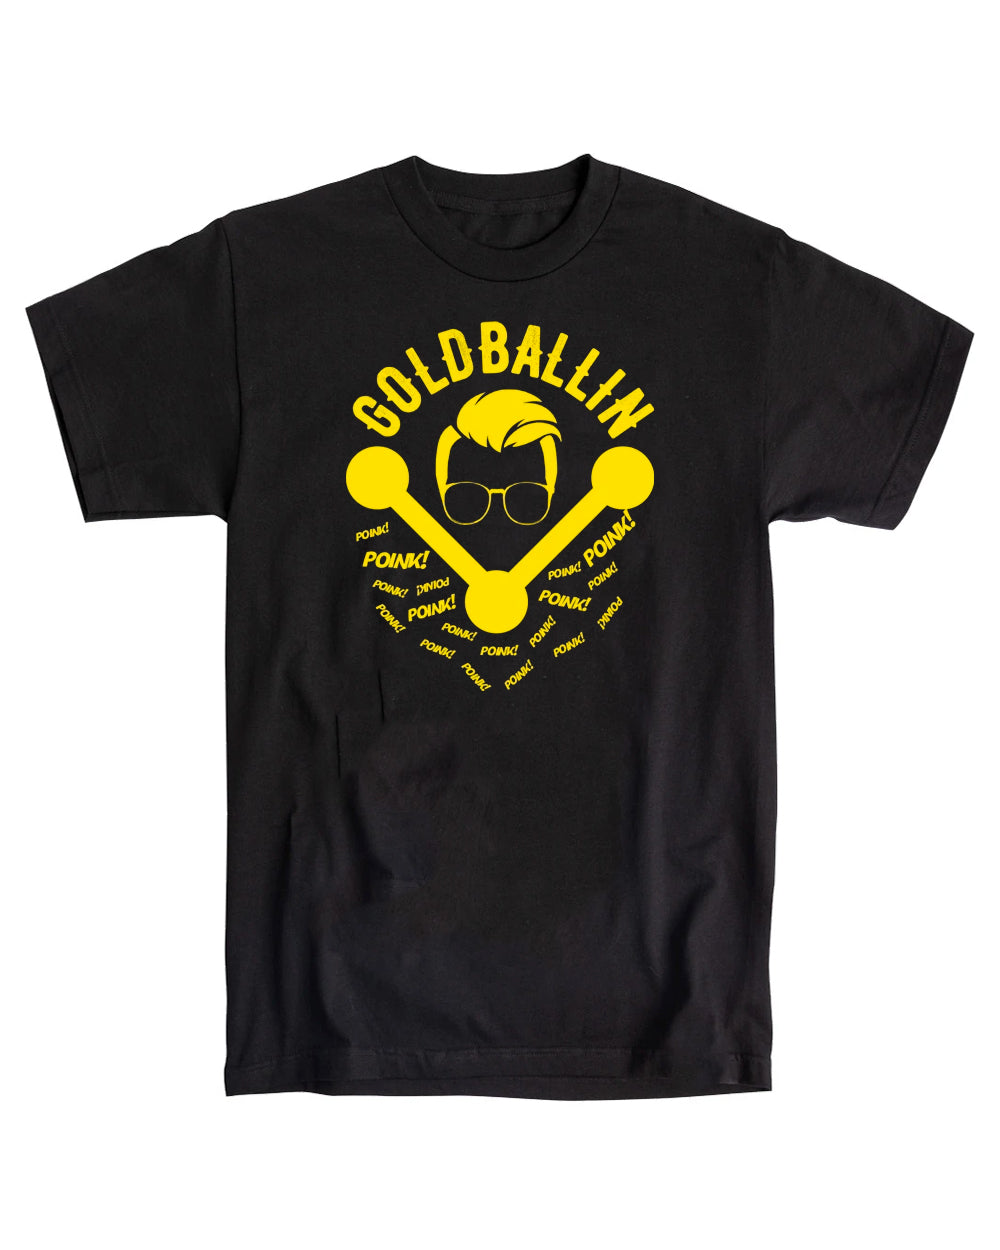 Goldballin Men's Tee